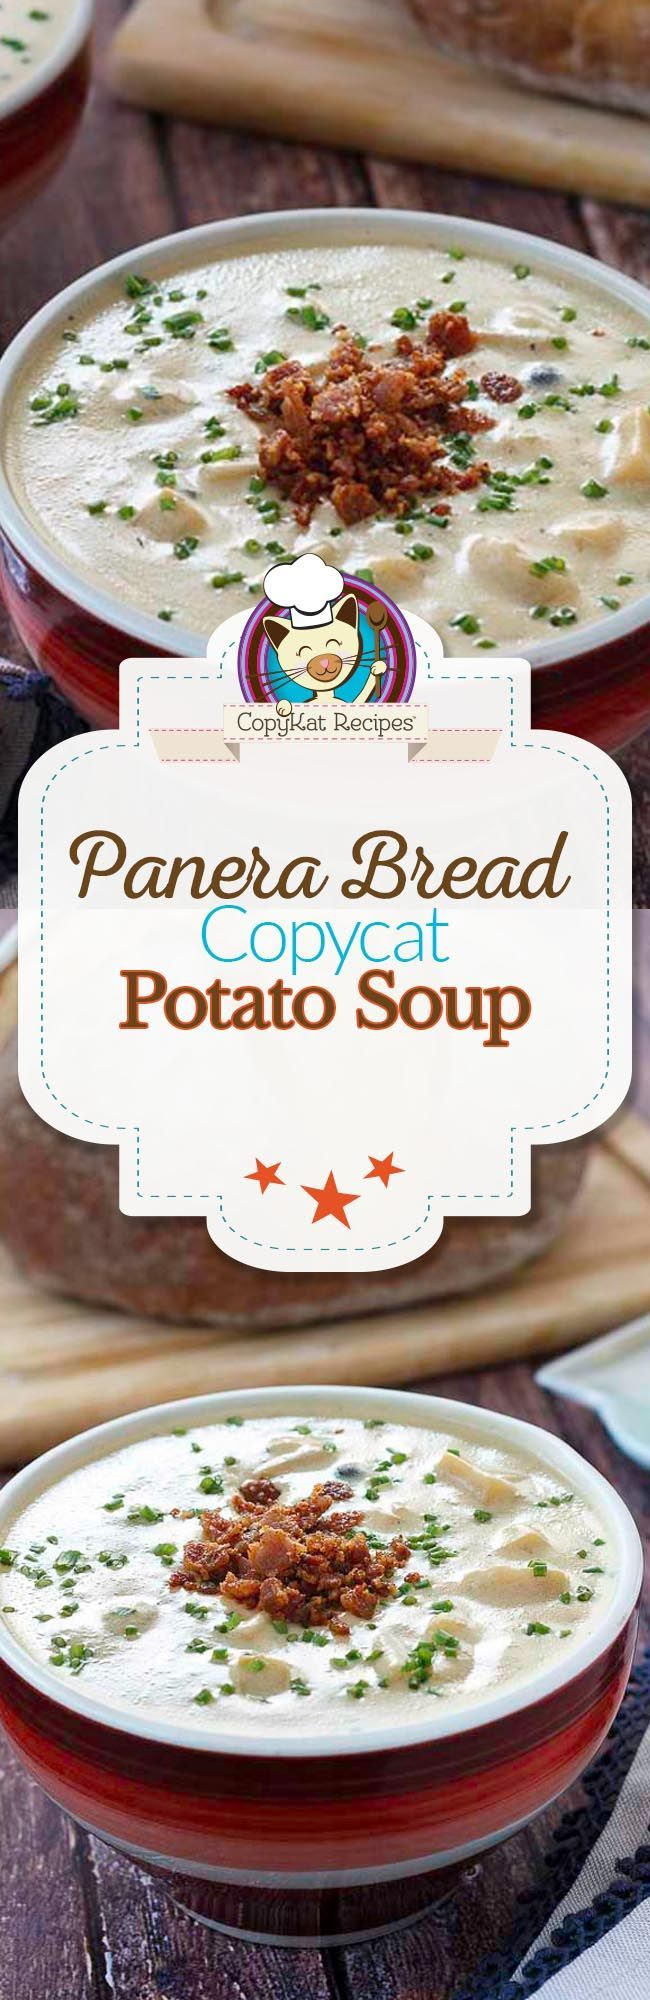 Do you love Panera Bread's Potato Soup?  Make this creamy potato soup  recipe at home with this recipe.  Potato soup is perfect for lunch or dinner.